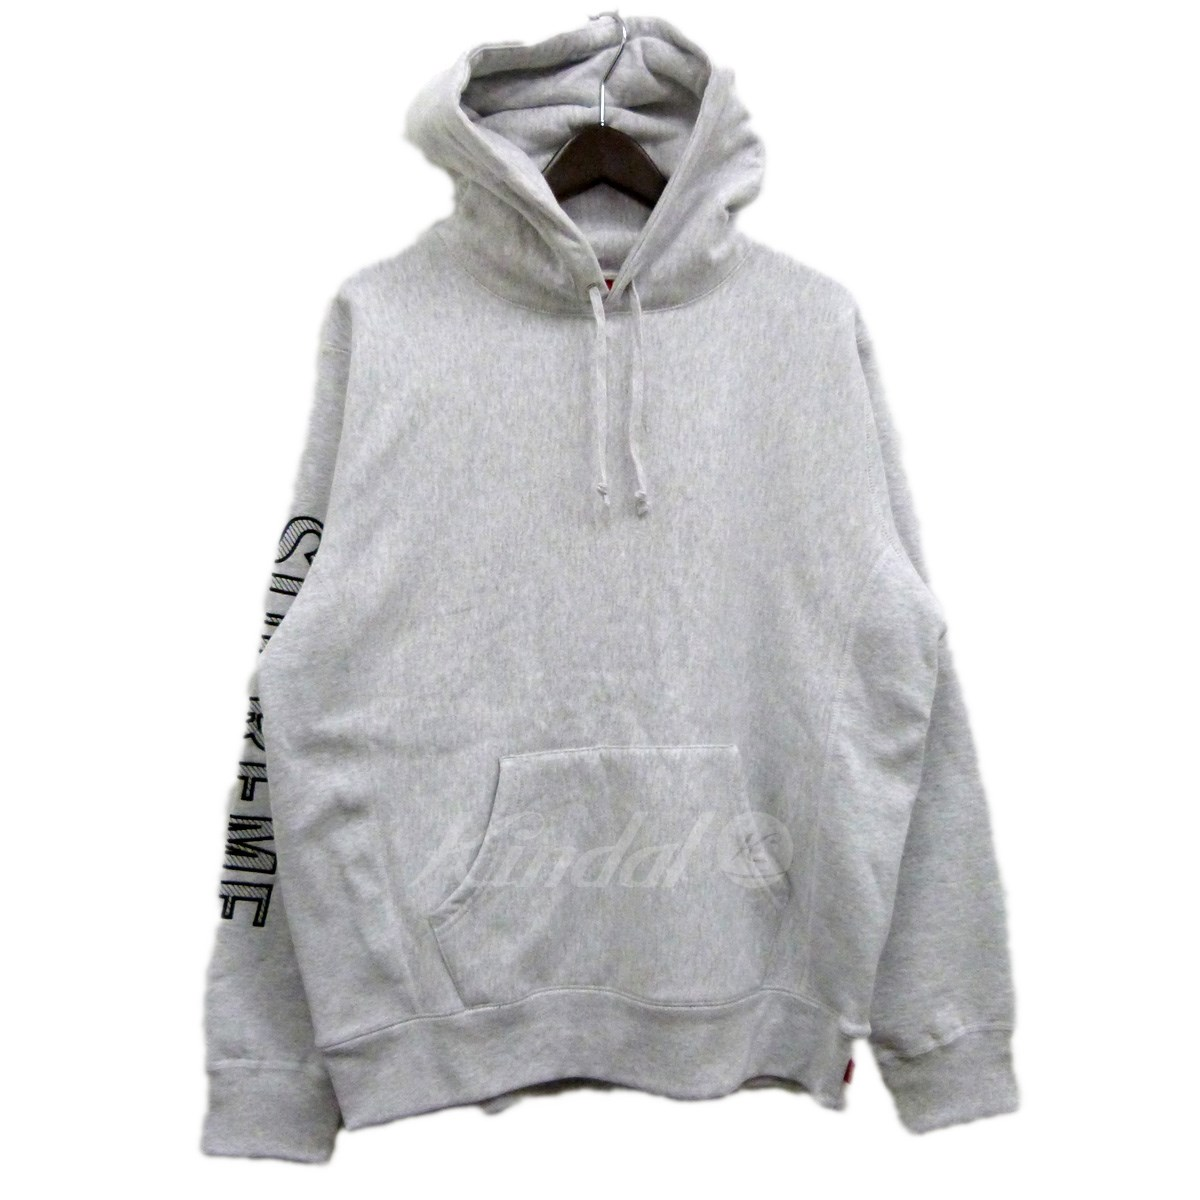 【中古】SUPREME 18SS「Sleeve Embroidery Hooded Sweatshirt」パーカー 【送料無料】 【081335】 【KIND1550】